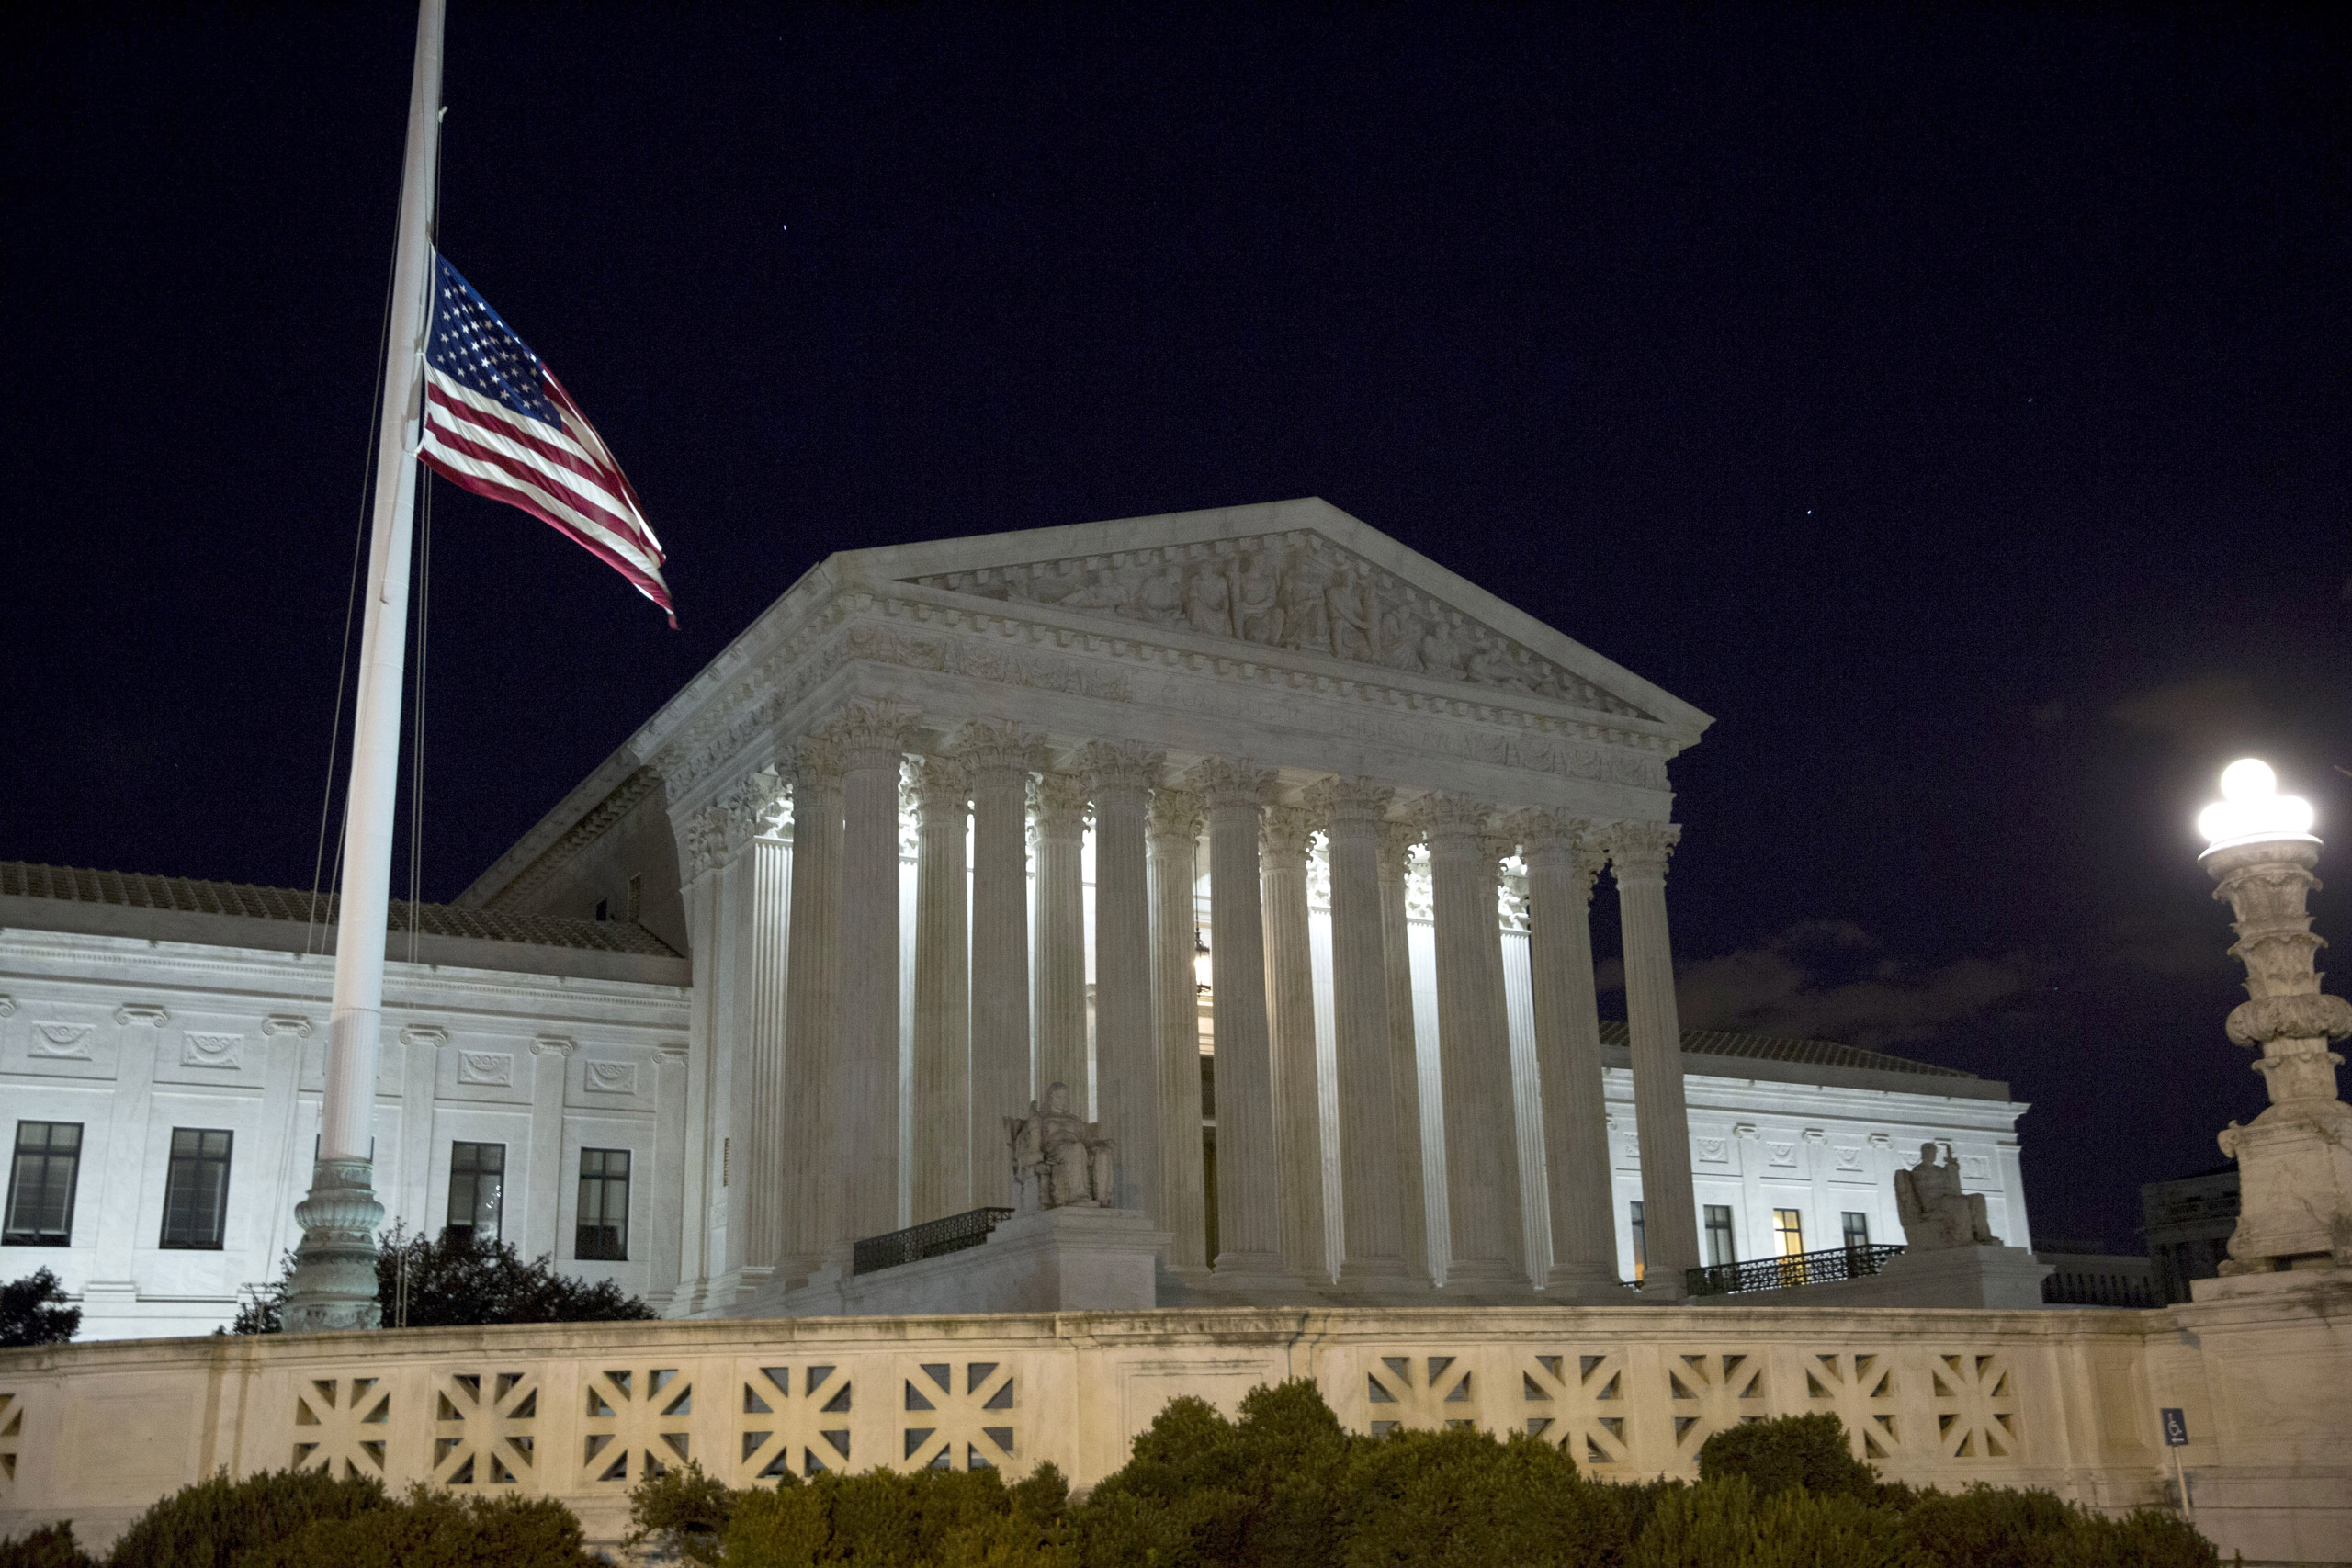 The American flag flies at half mast after the death of Supreme Court Justice Antonin Scalia at the U.S. Supreme Court in Washington on Feb.13, 2016.